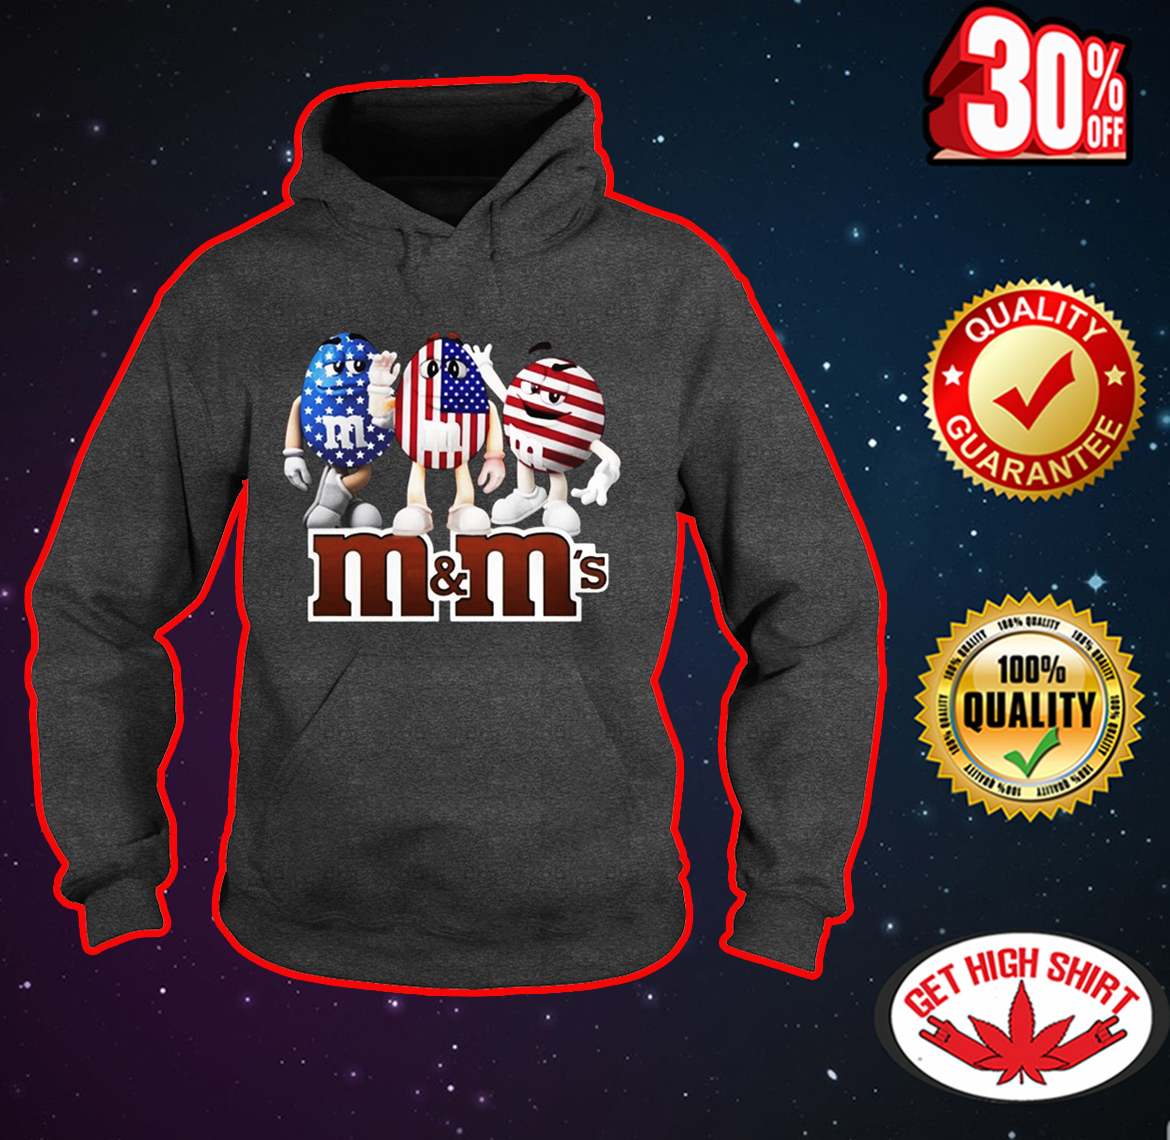 M&M's American Flag 4th of July hoodie